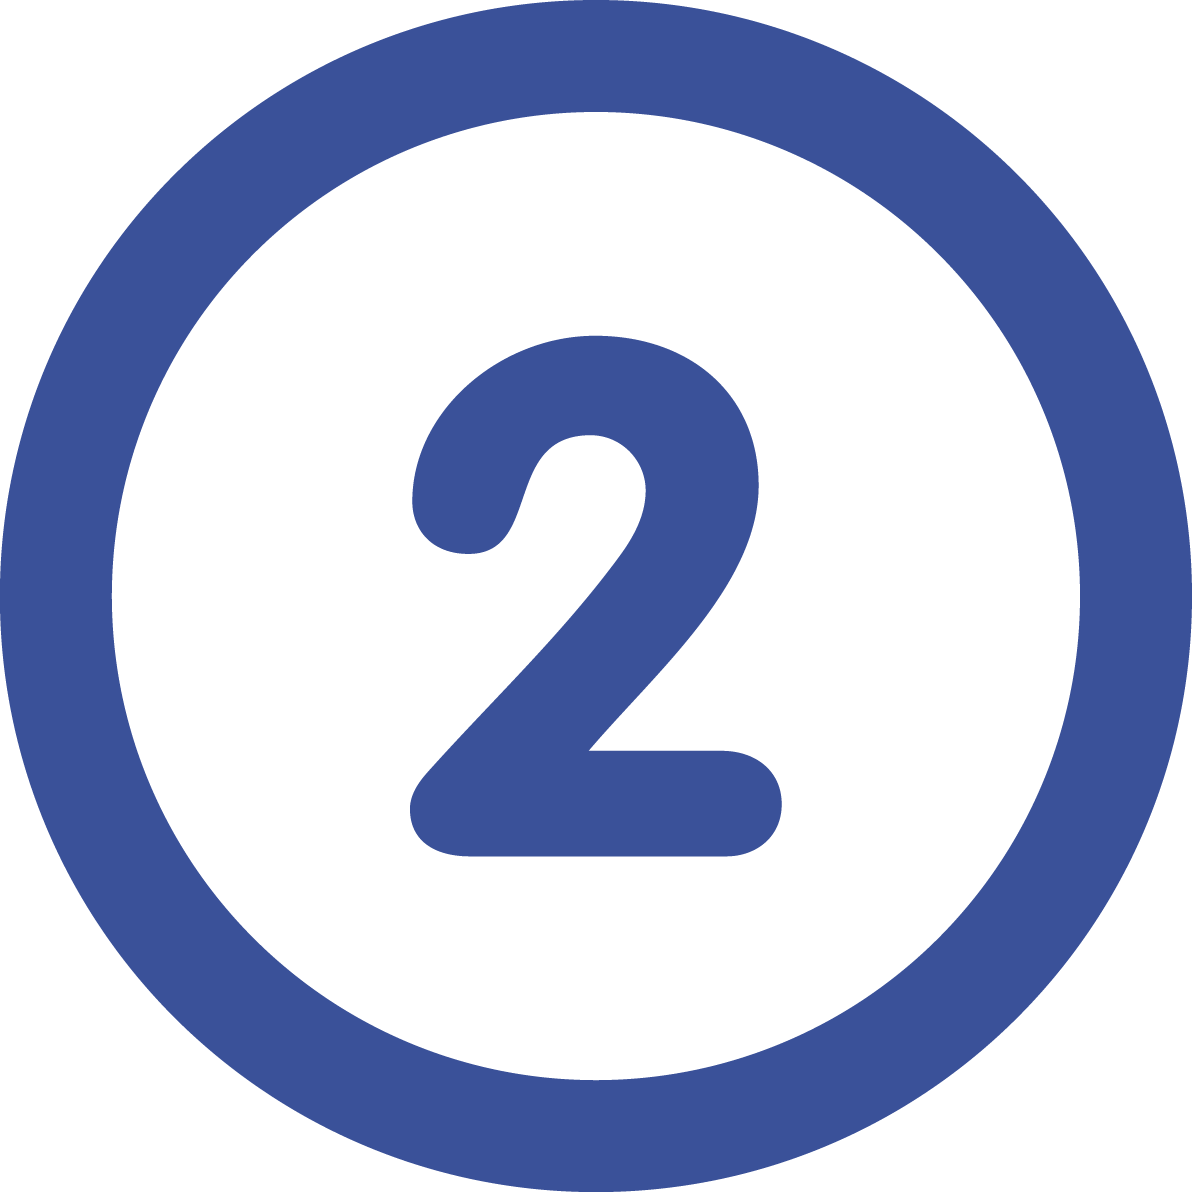 Number 2 designed by Freepik from Flaticon